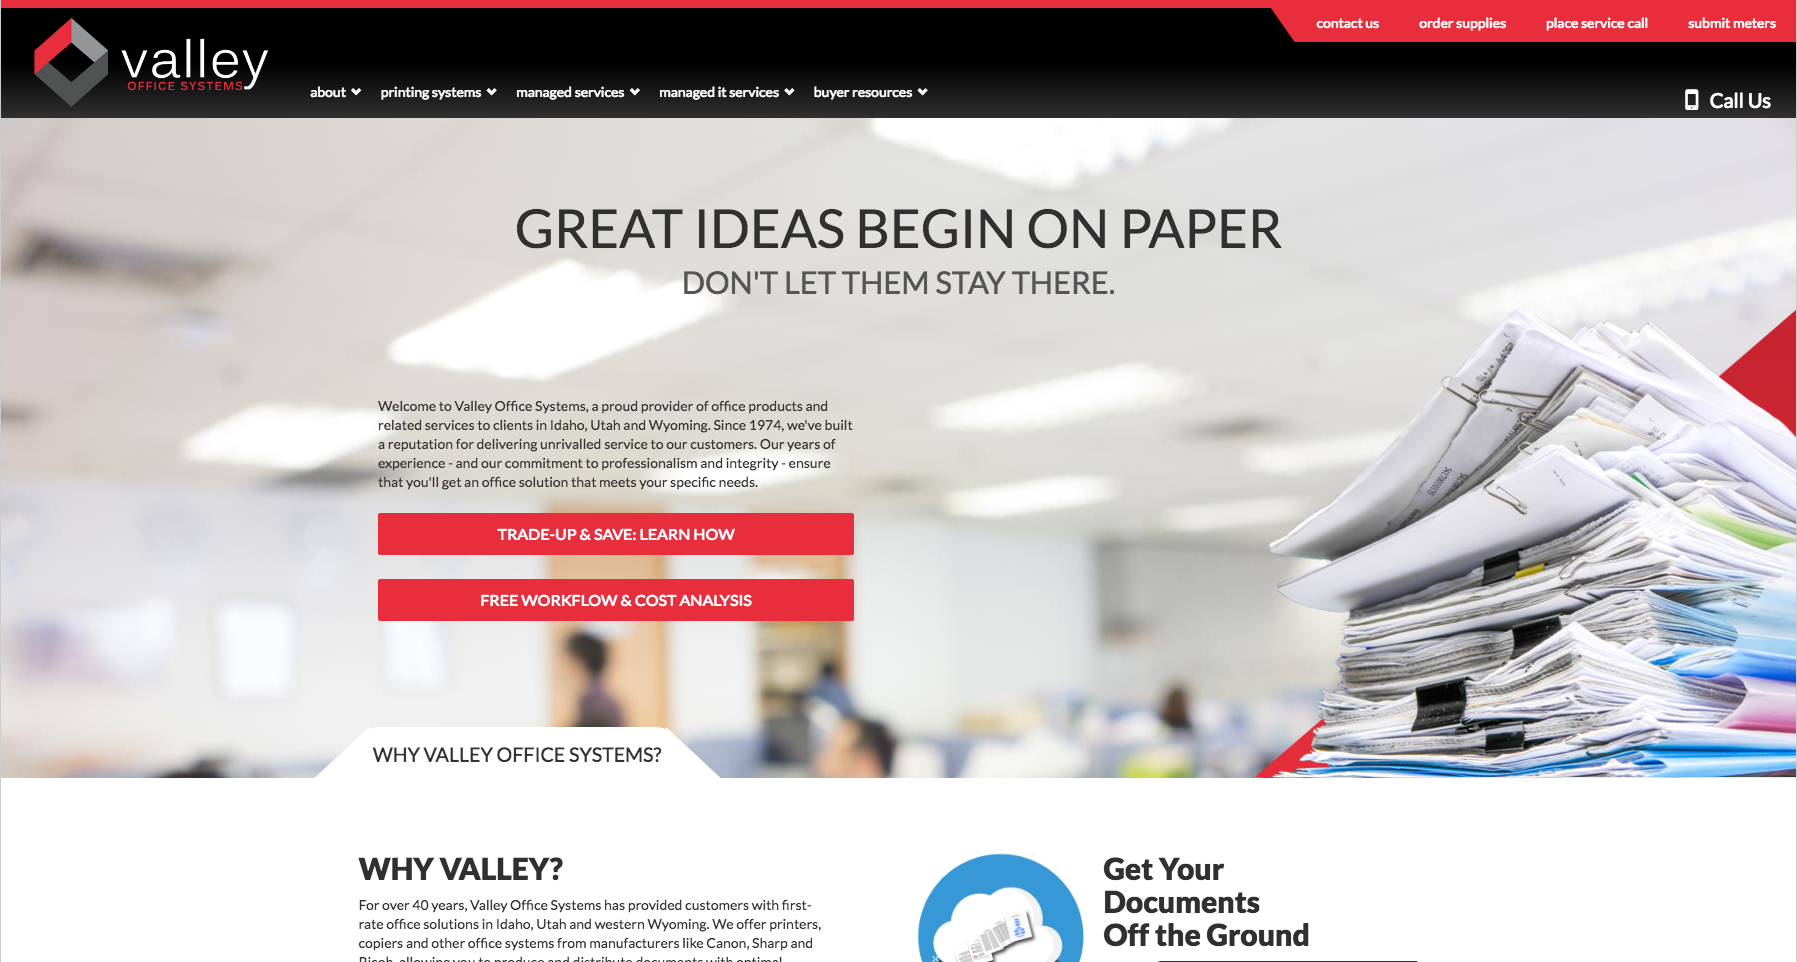 valleyofficesystems